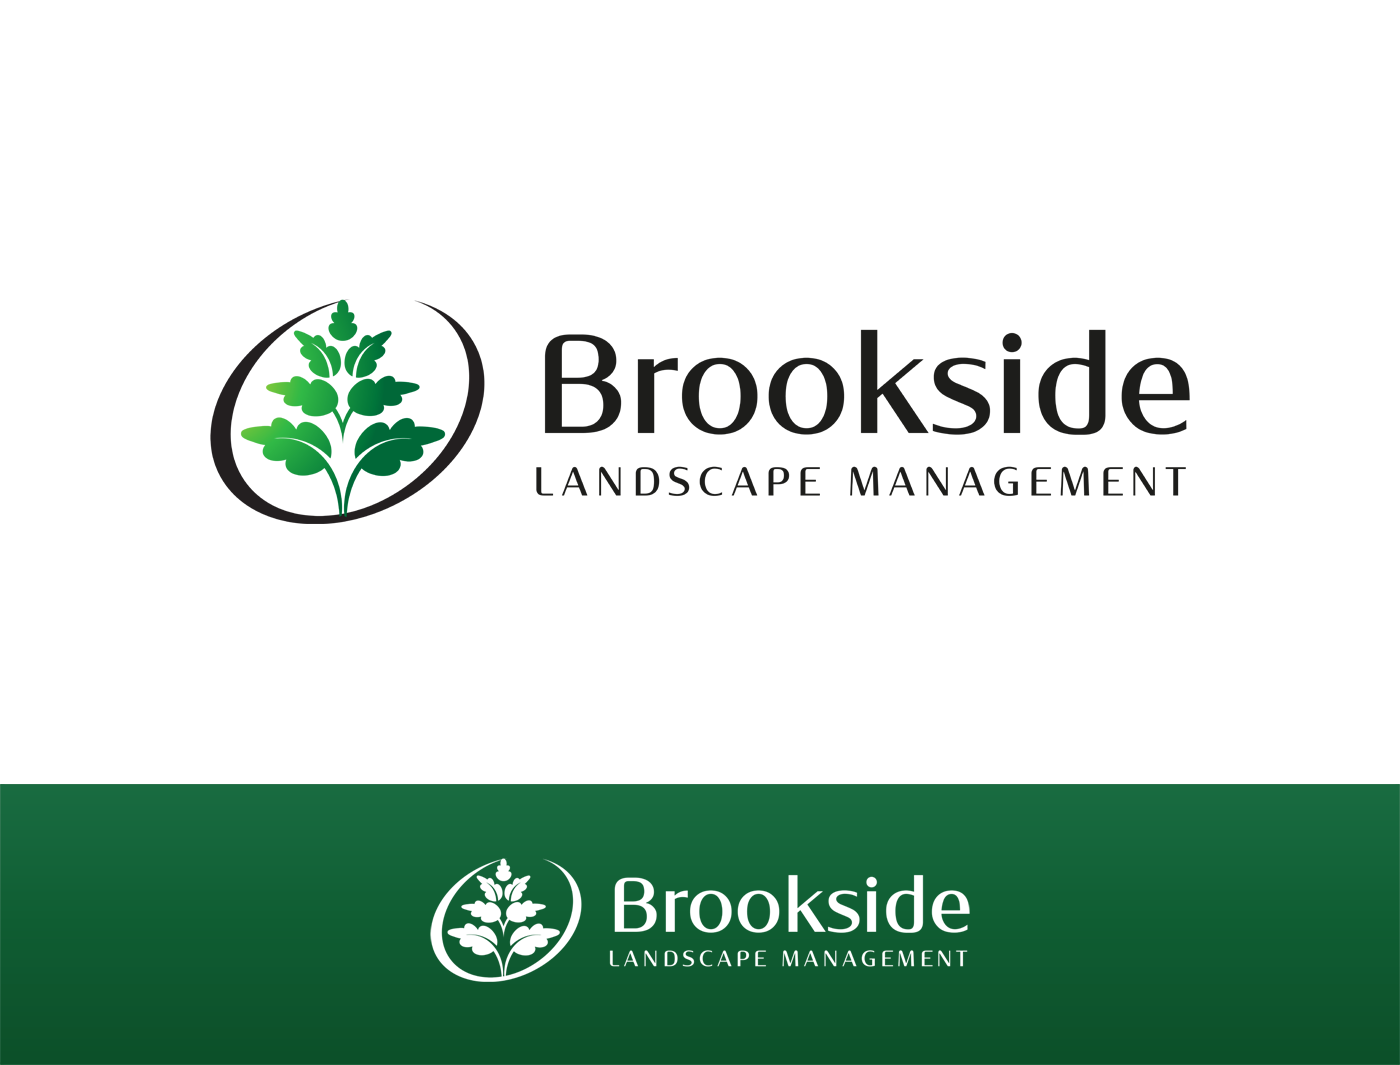 Logo Design by Alexander Osokin - Entry No. 91 in the Logo Design Contest New Logo Design for Brookside Landscape Management.